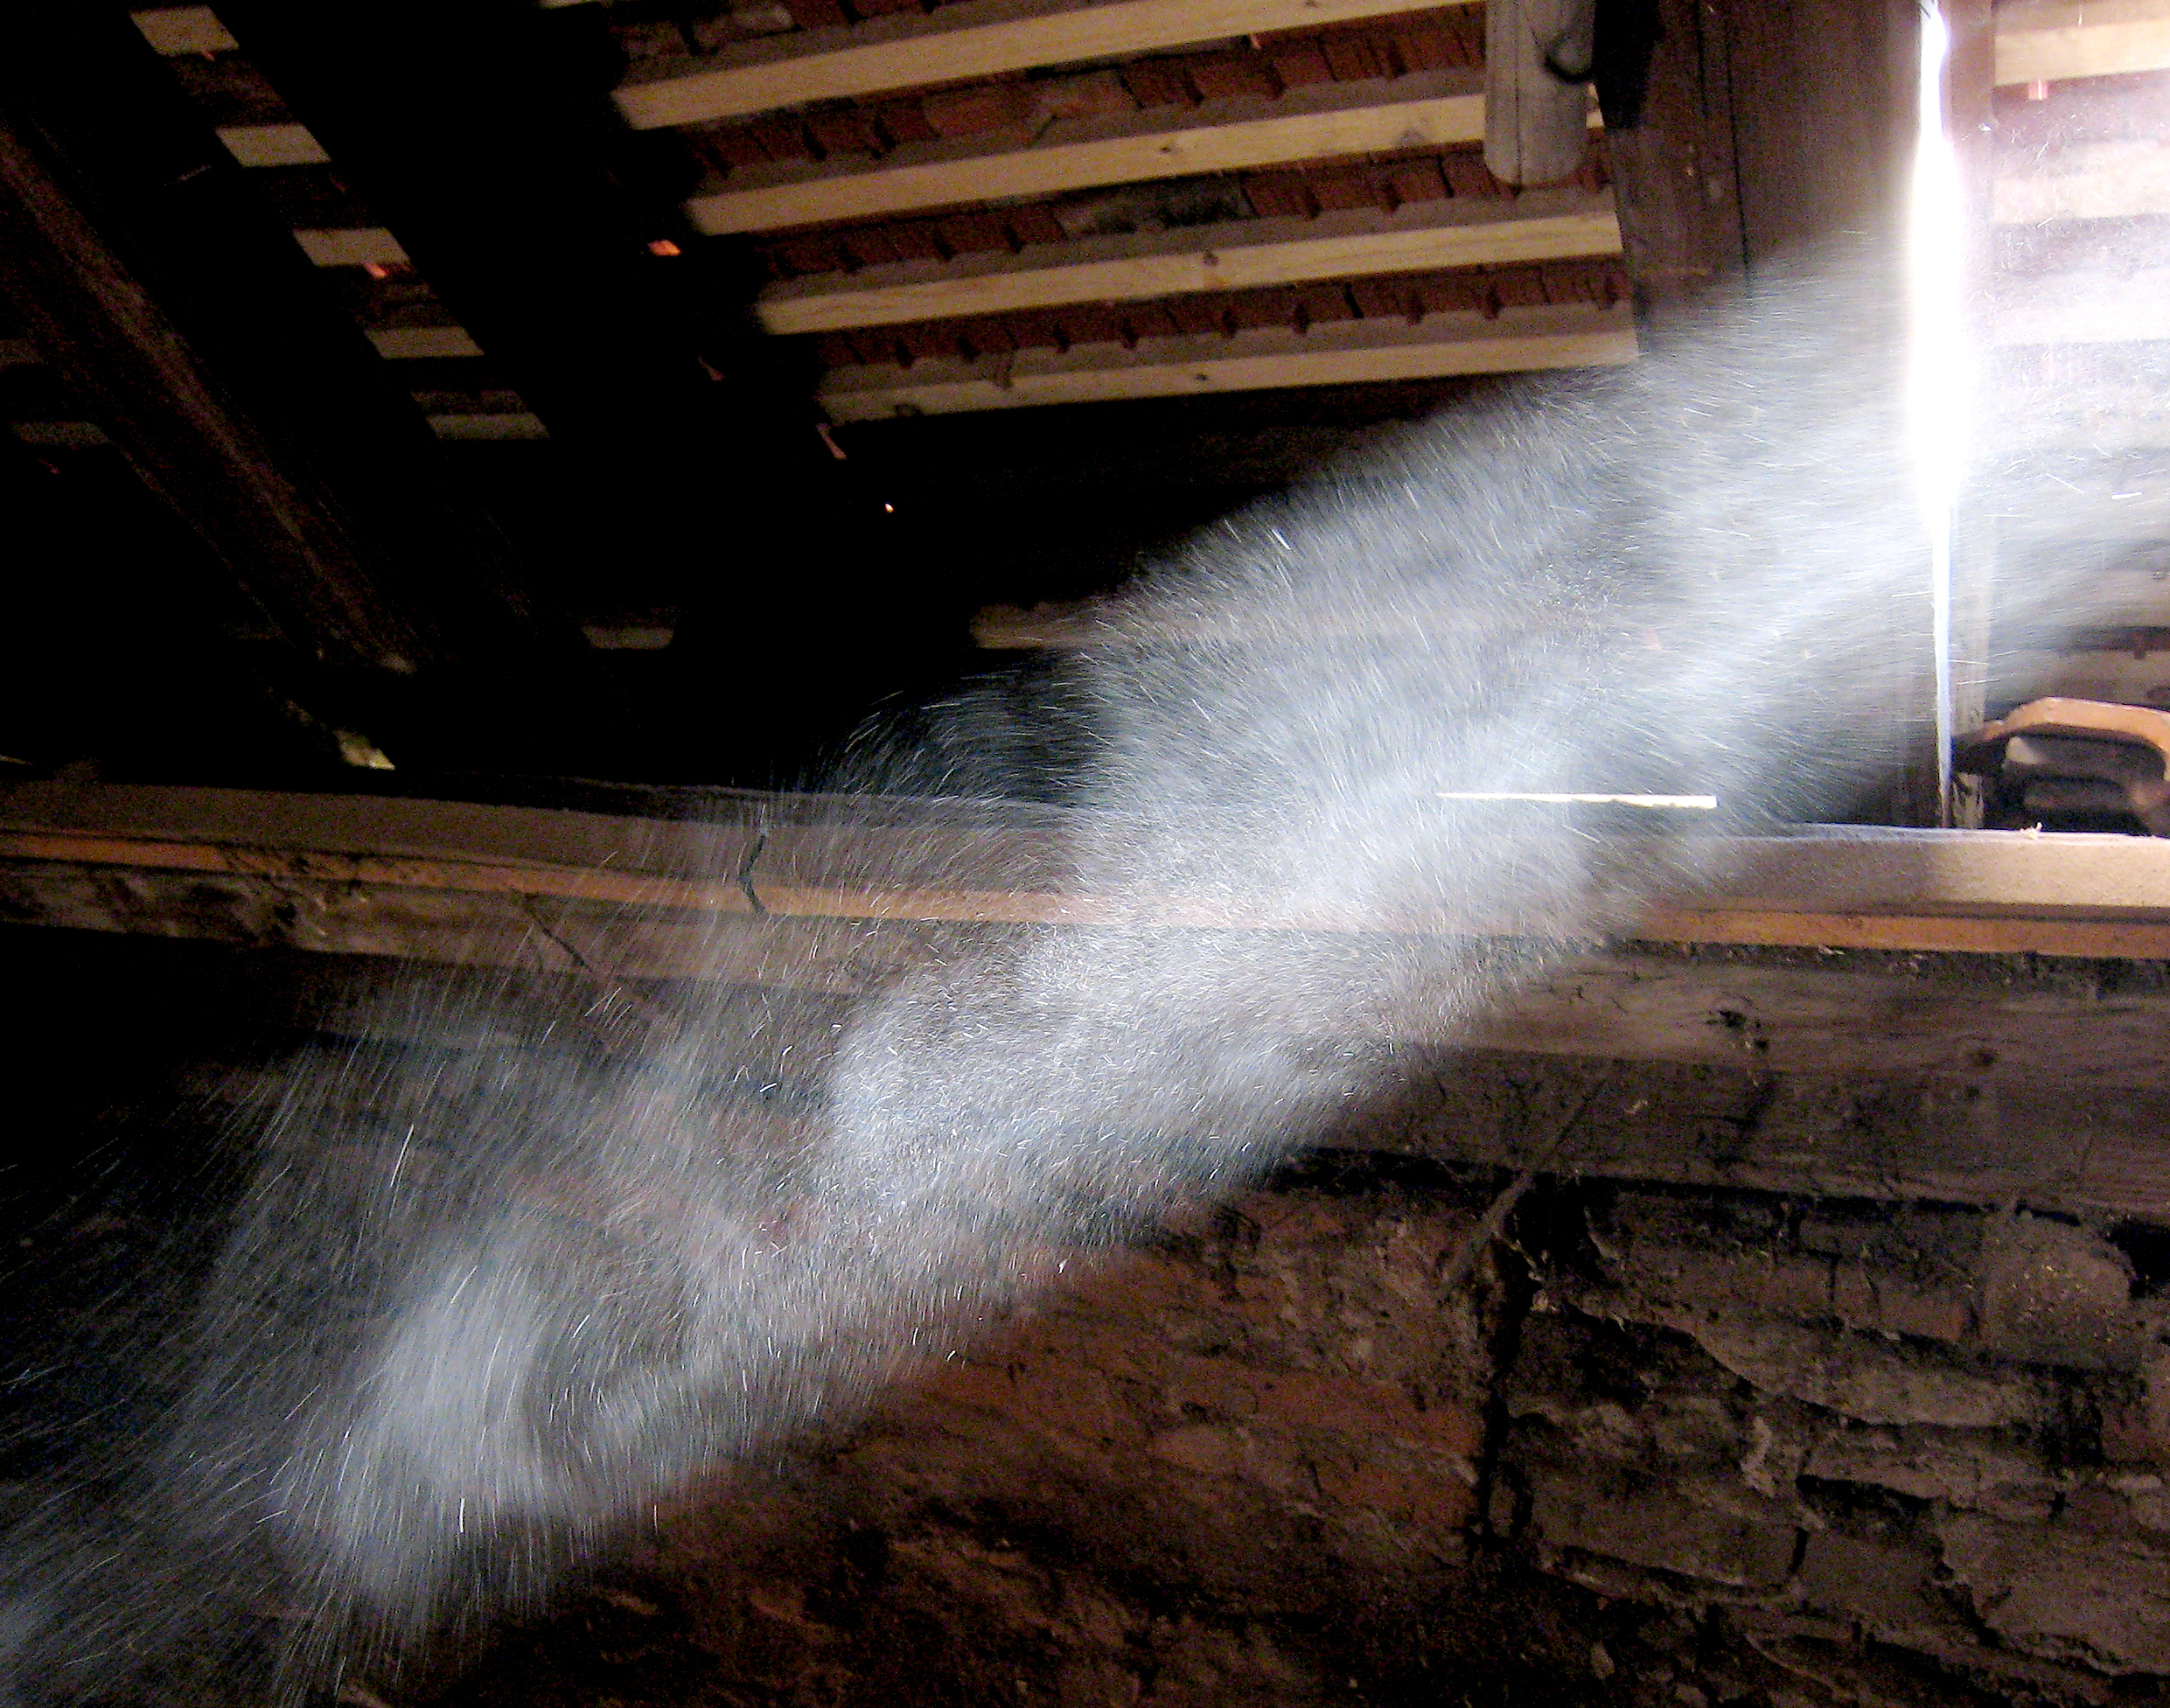 Dust Motes dancing in the sunlight from WiKiMedia commons